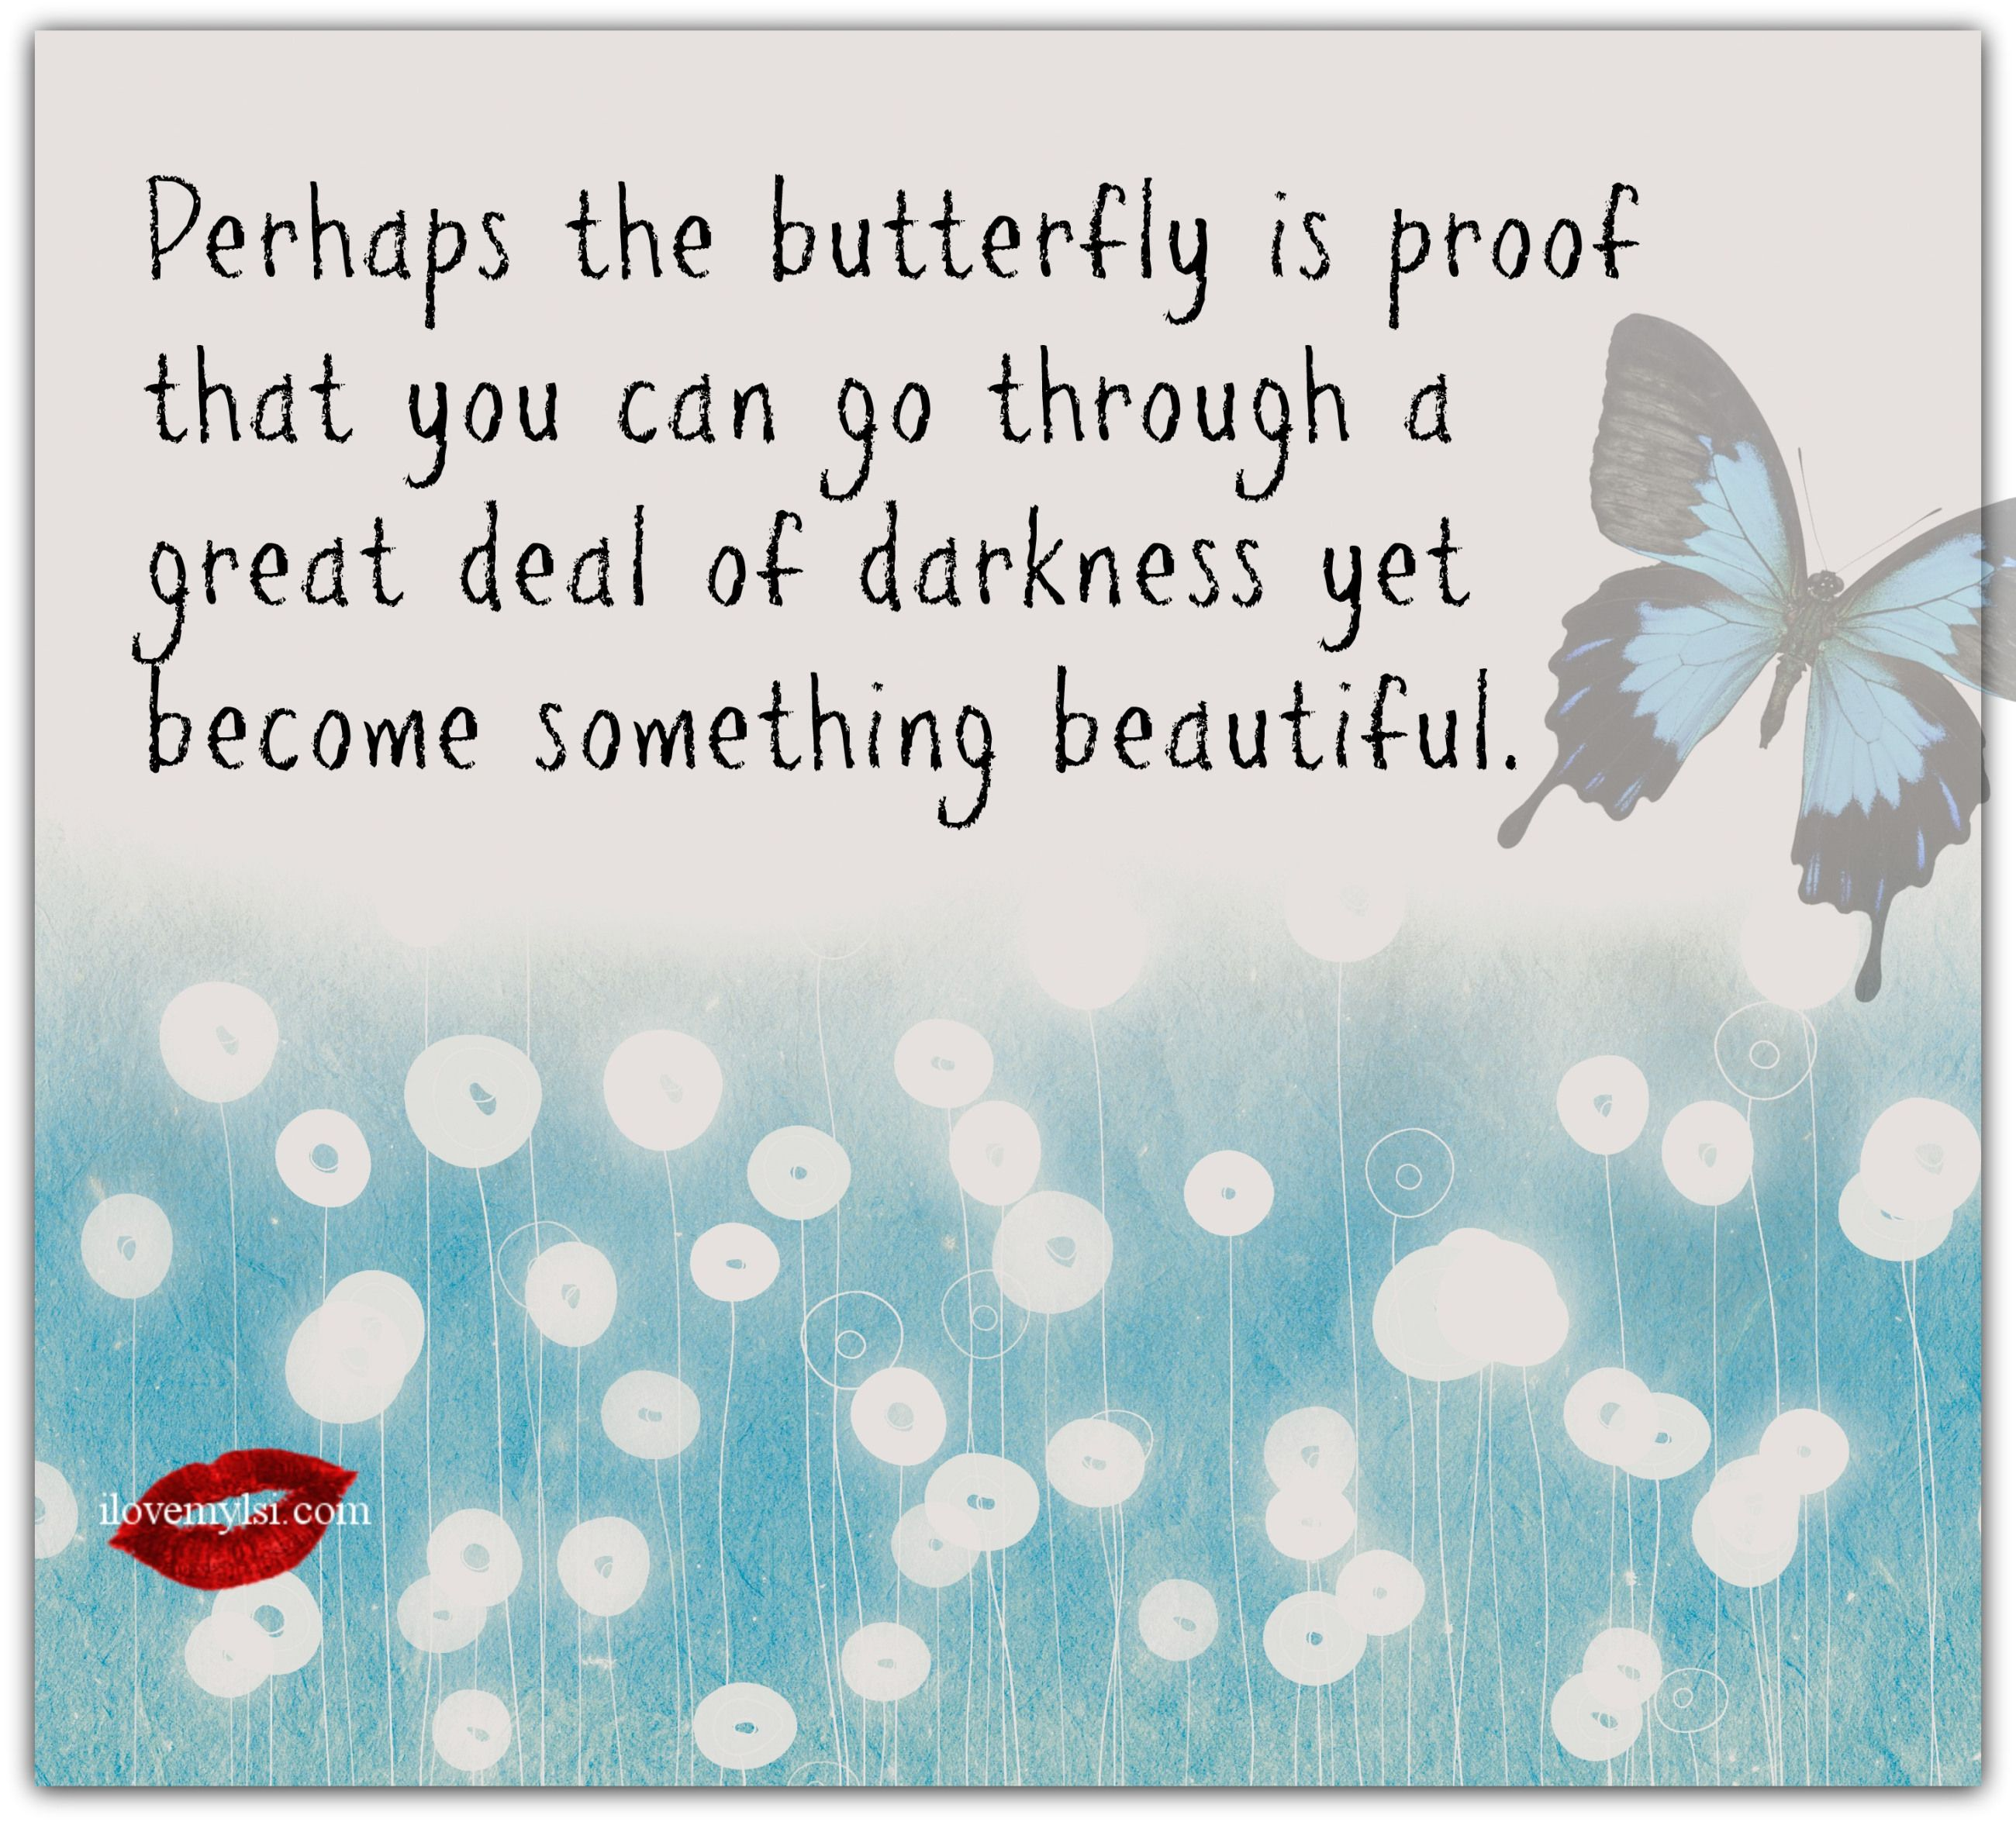 best images about butterfly logo design the 17 best images about butterfly logo design the beauty and butterflies